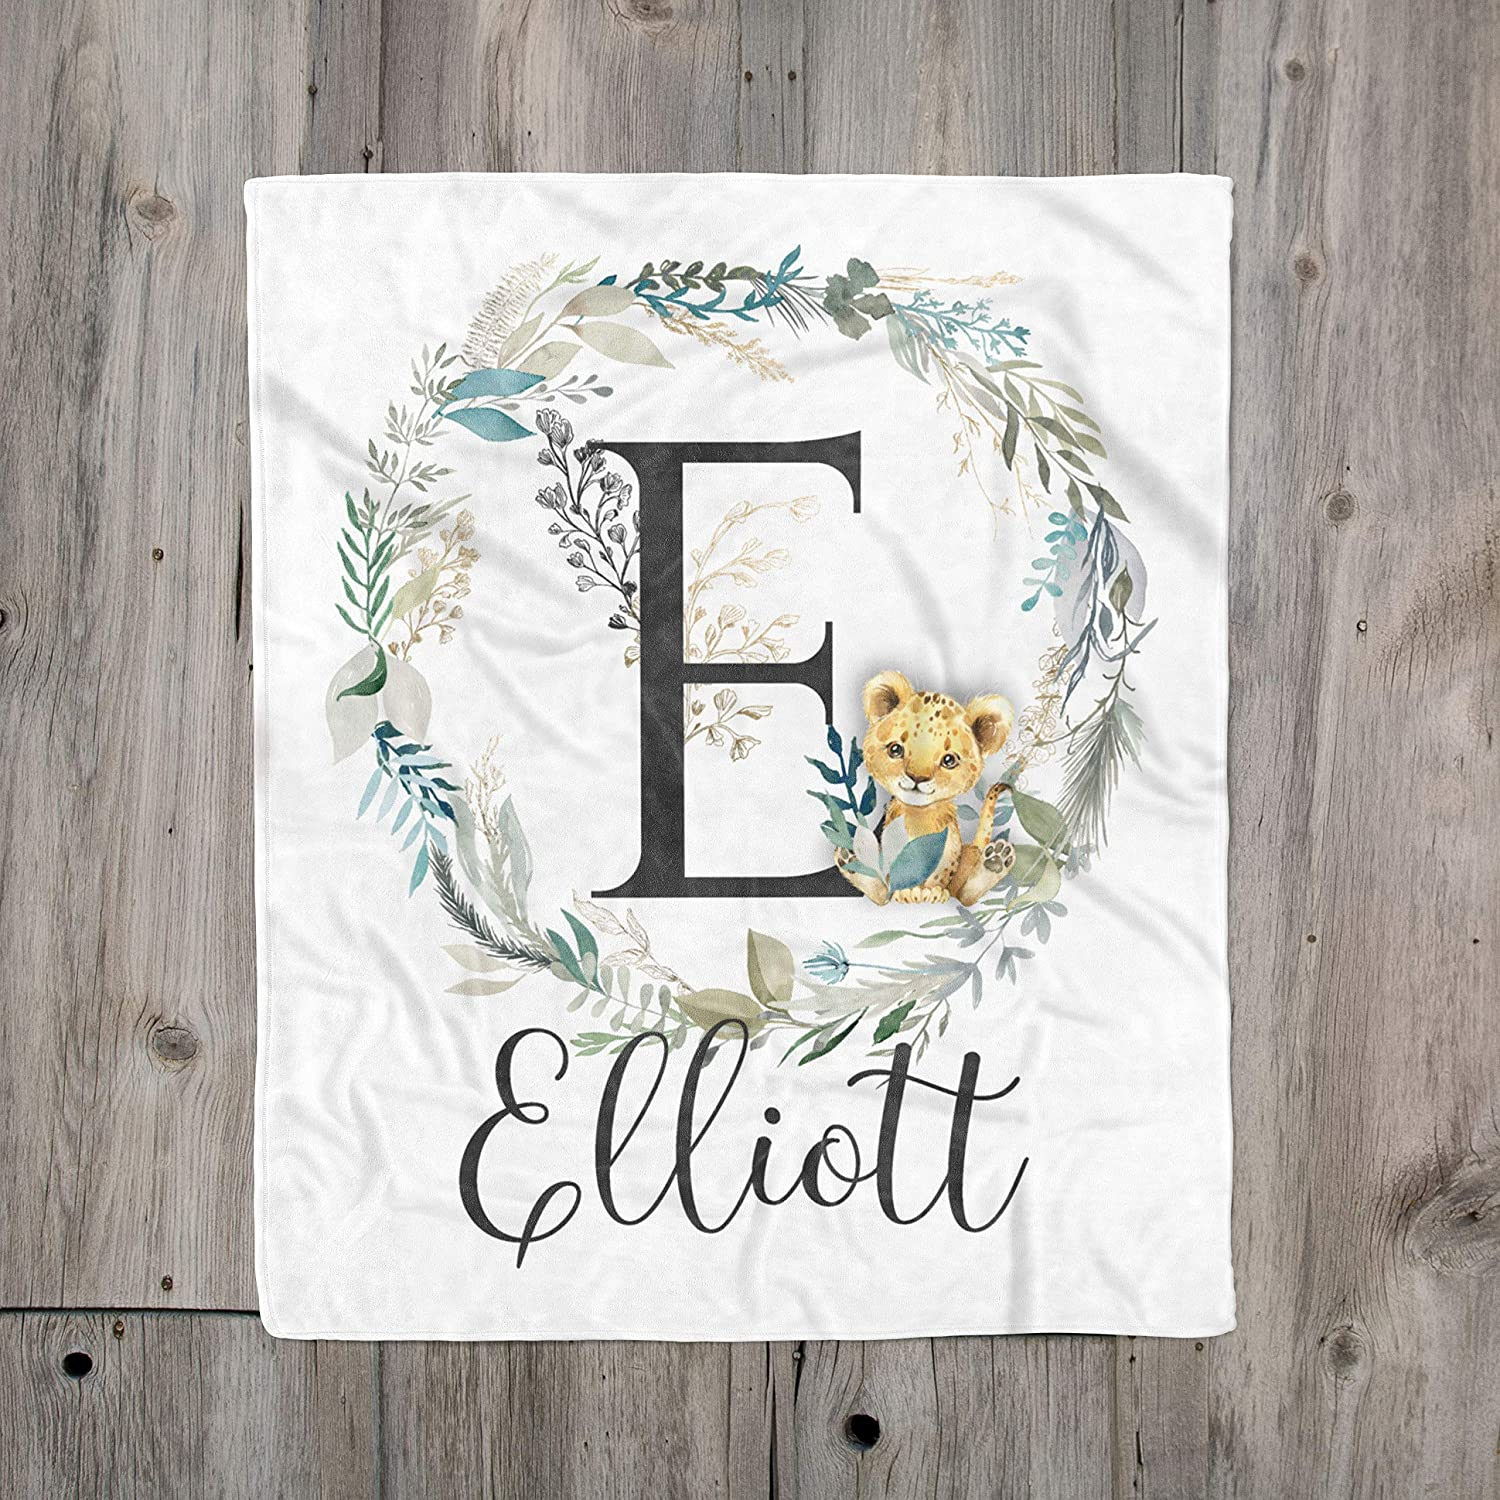 Great for baby or Toddler Gift New Personalised baby blanket with lion design